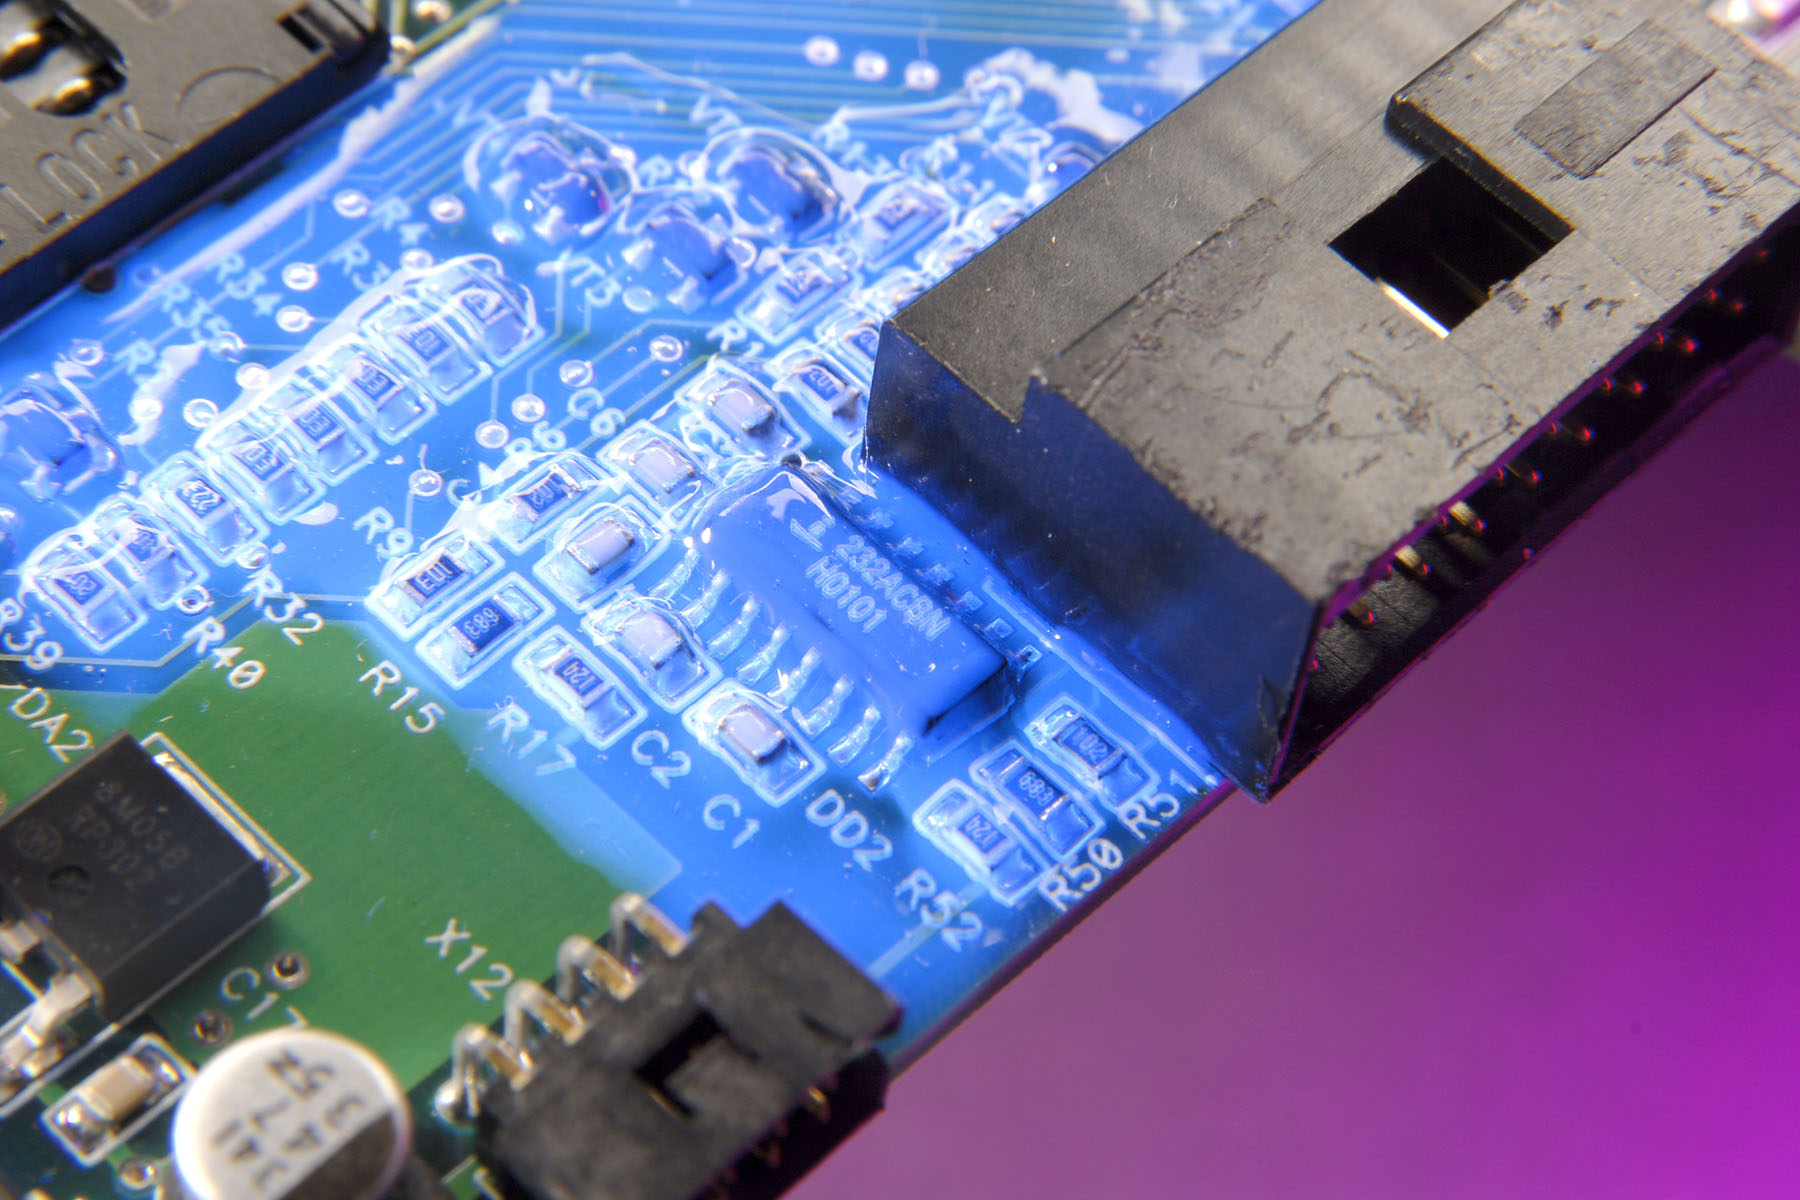 Conformal Coatings For Printed Circuit Boards Board Programming Pcb Assembly Services Electronic